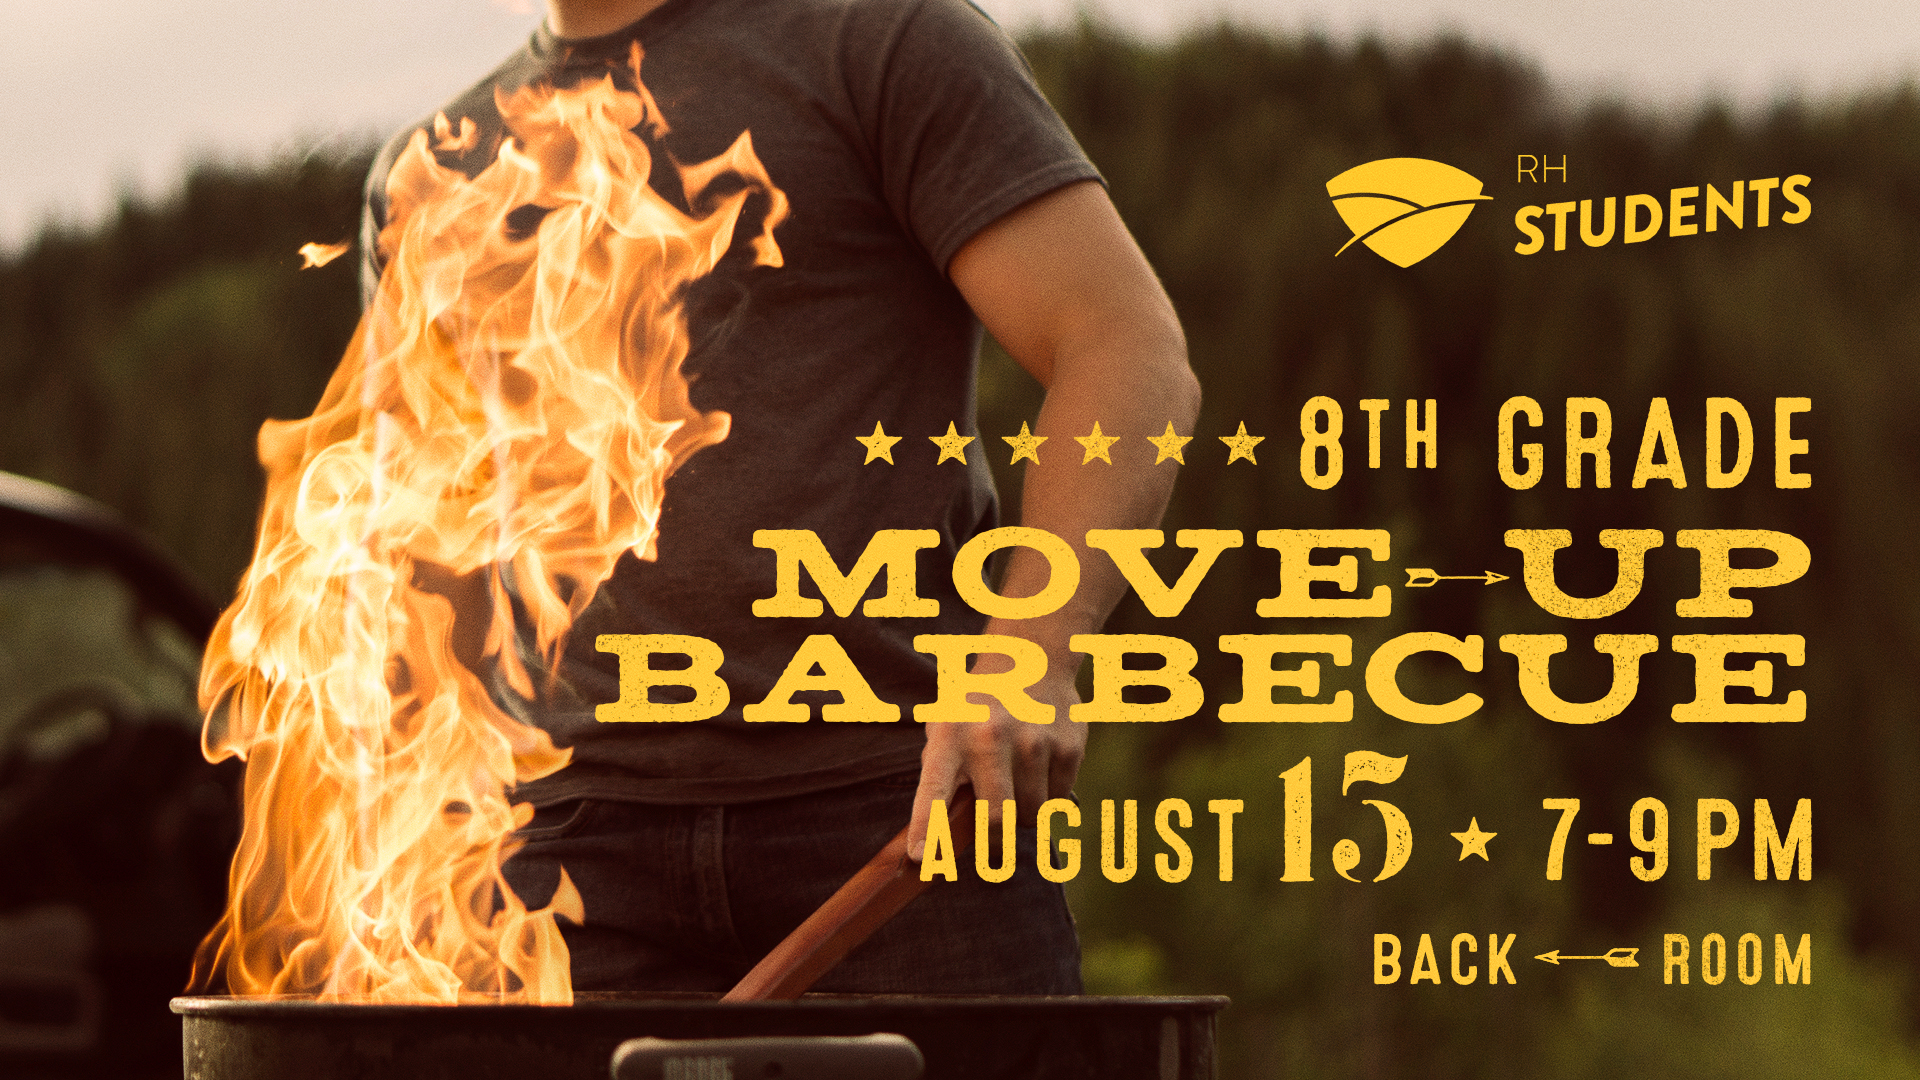 Rhcc move up bbq screen  no texture